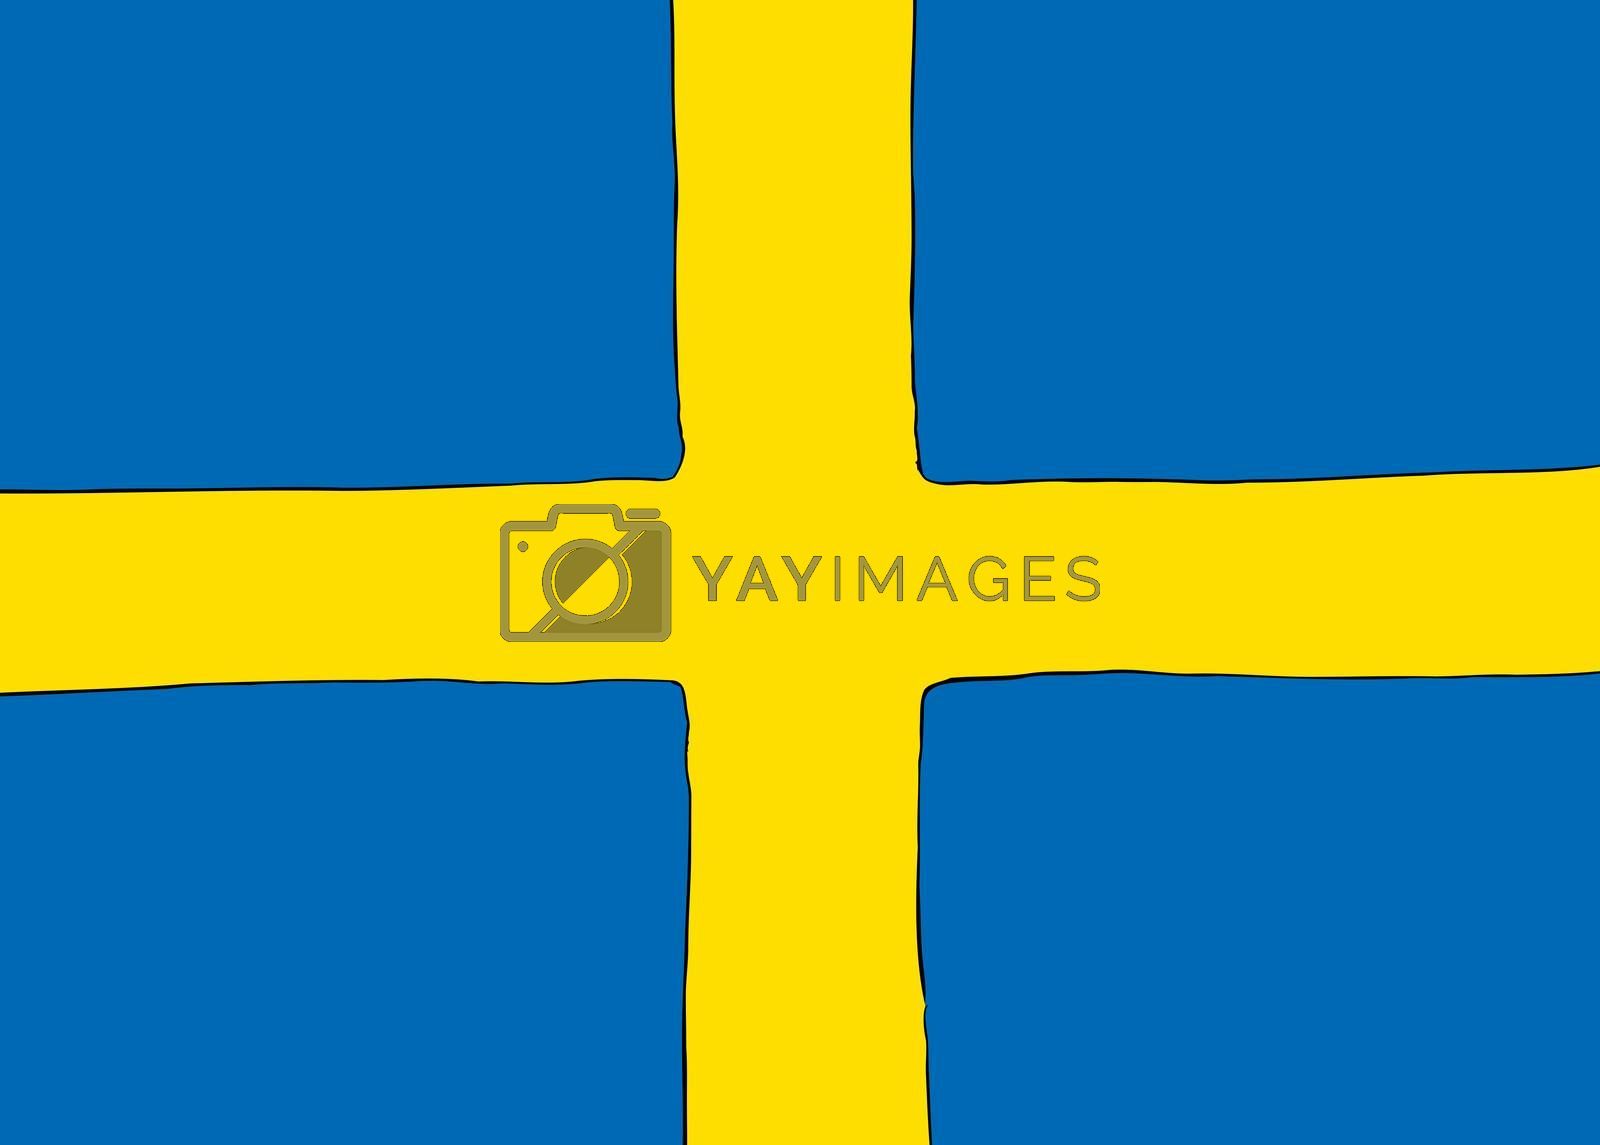 Symmetrical centered version of a Nordic Cross flag representing Sweden